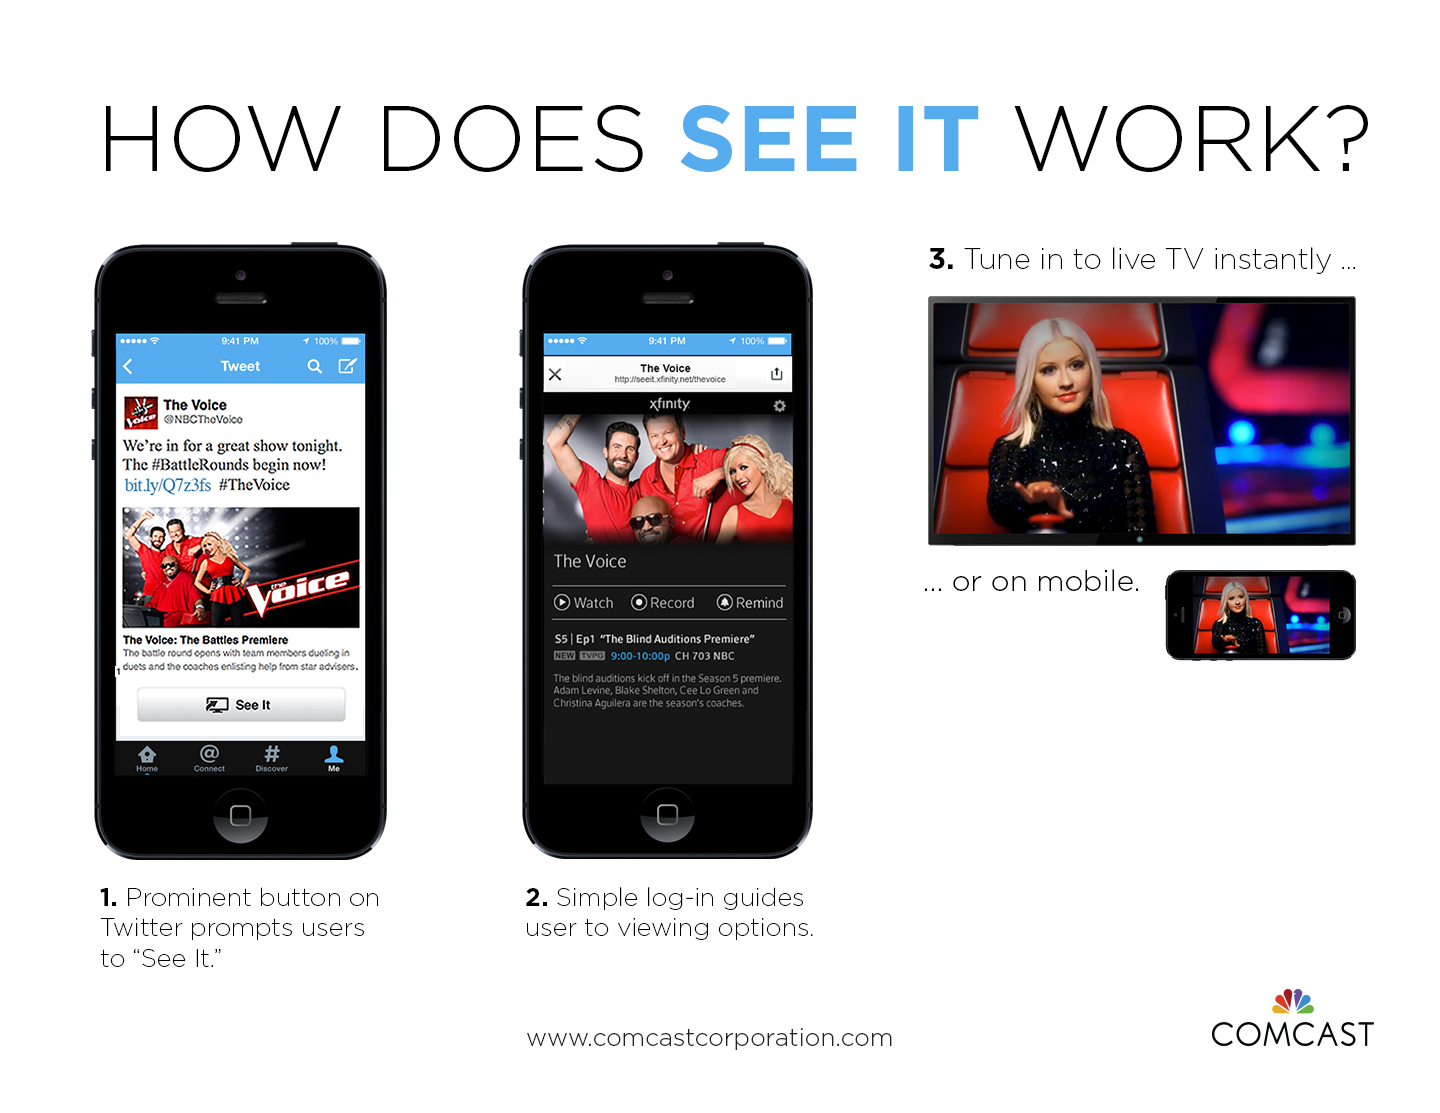 how does it work Twitter and Comcasts new See it button lets you watch and record TV shows directly from a tweet